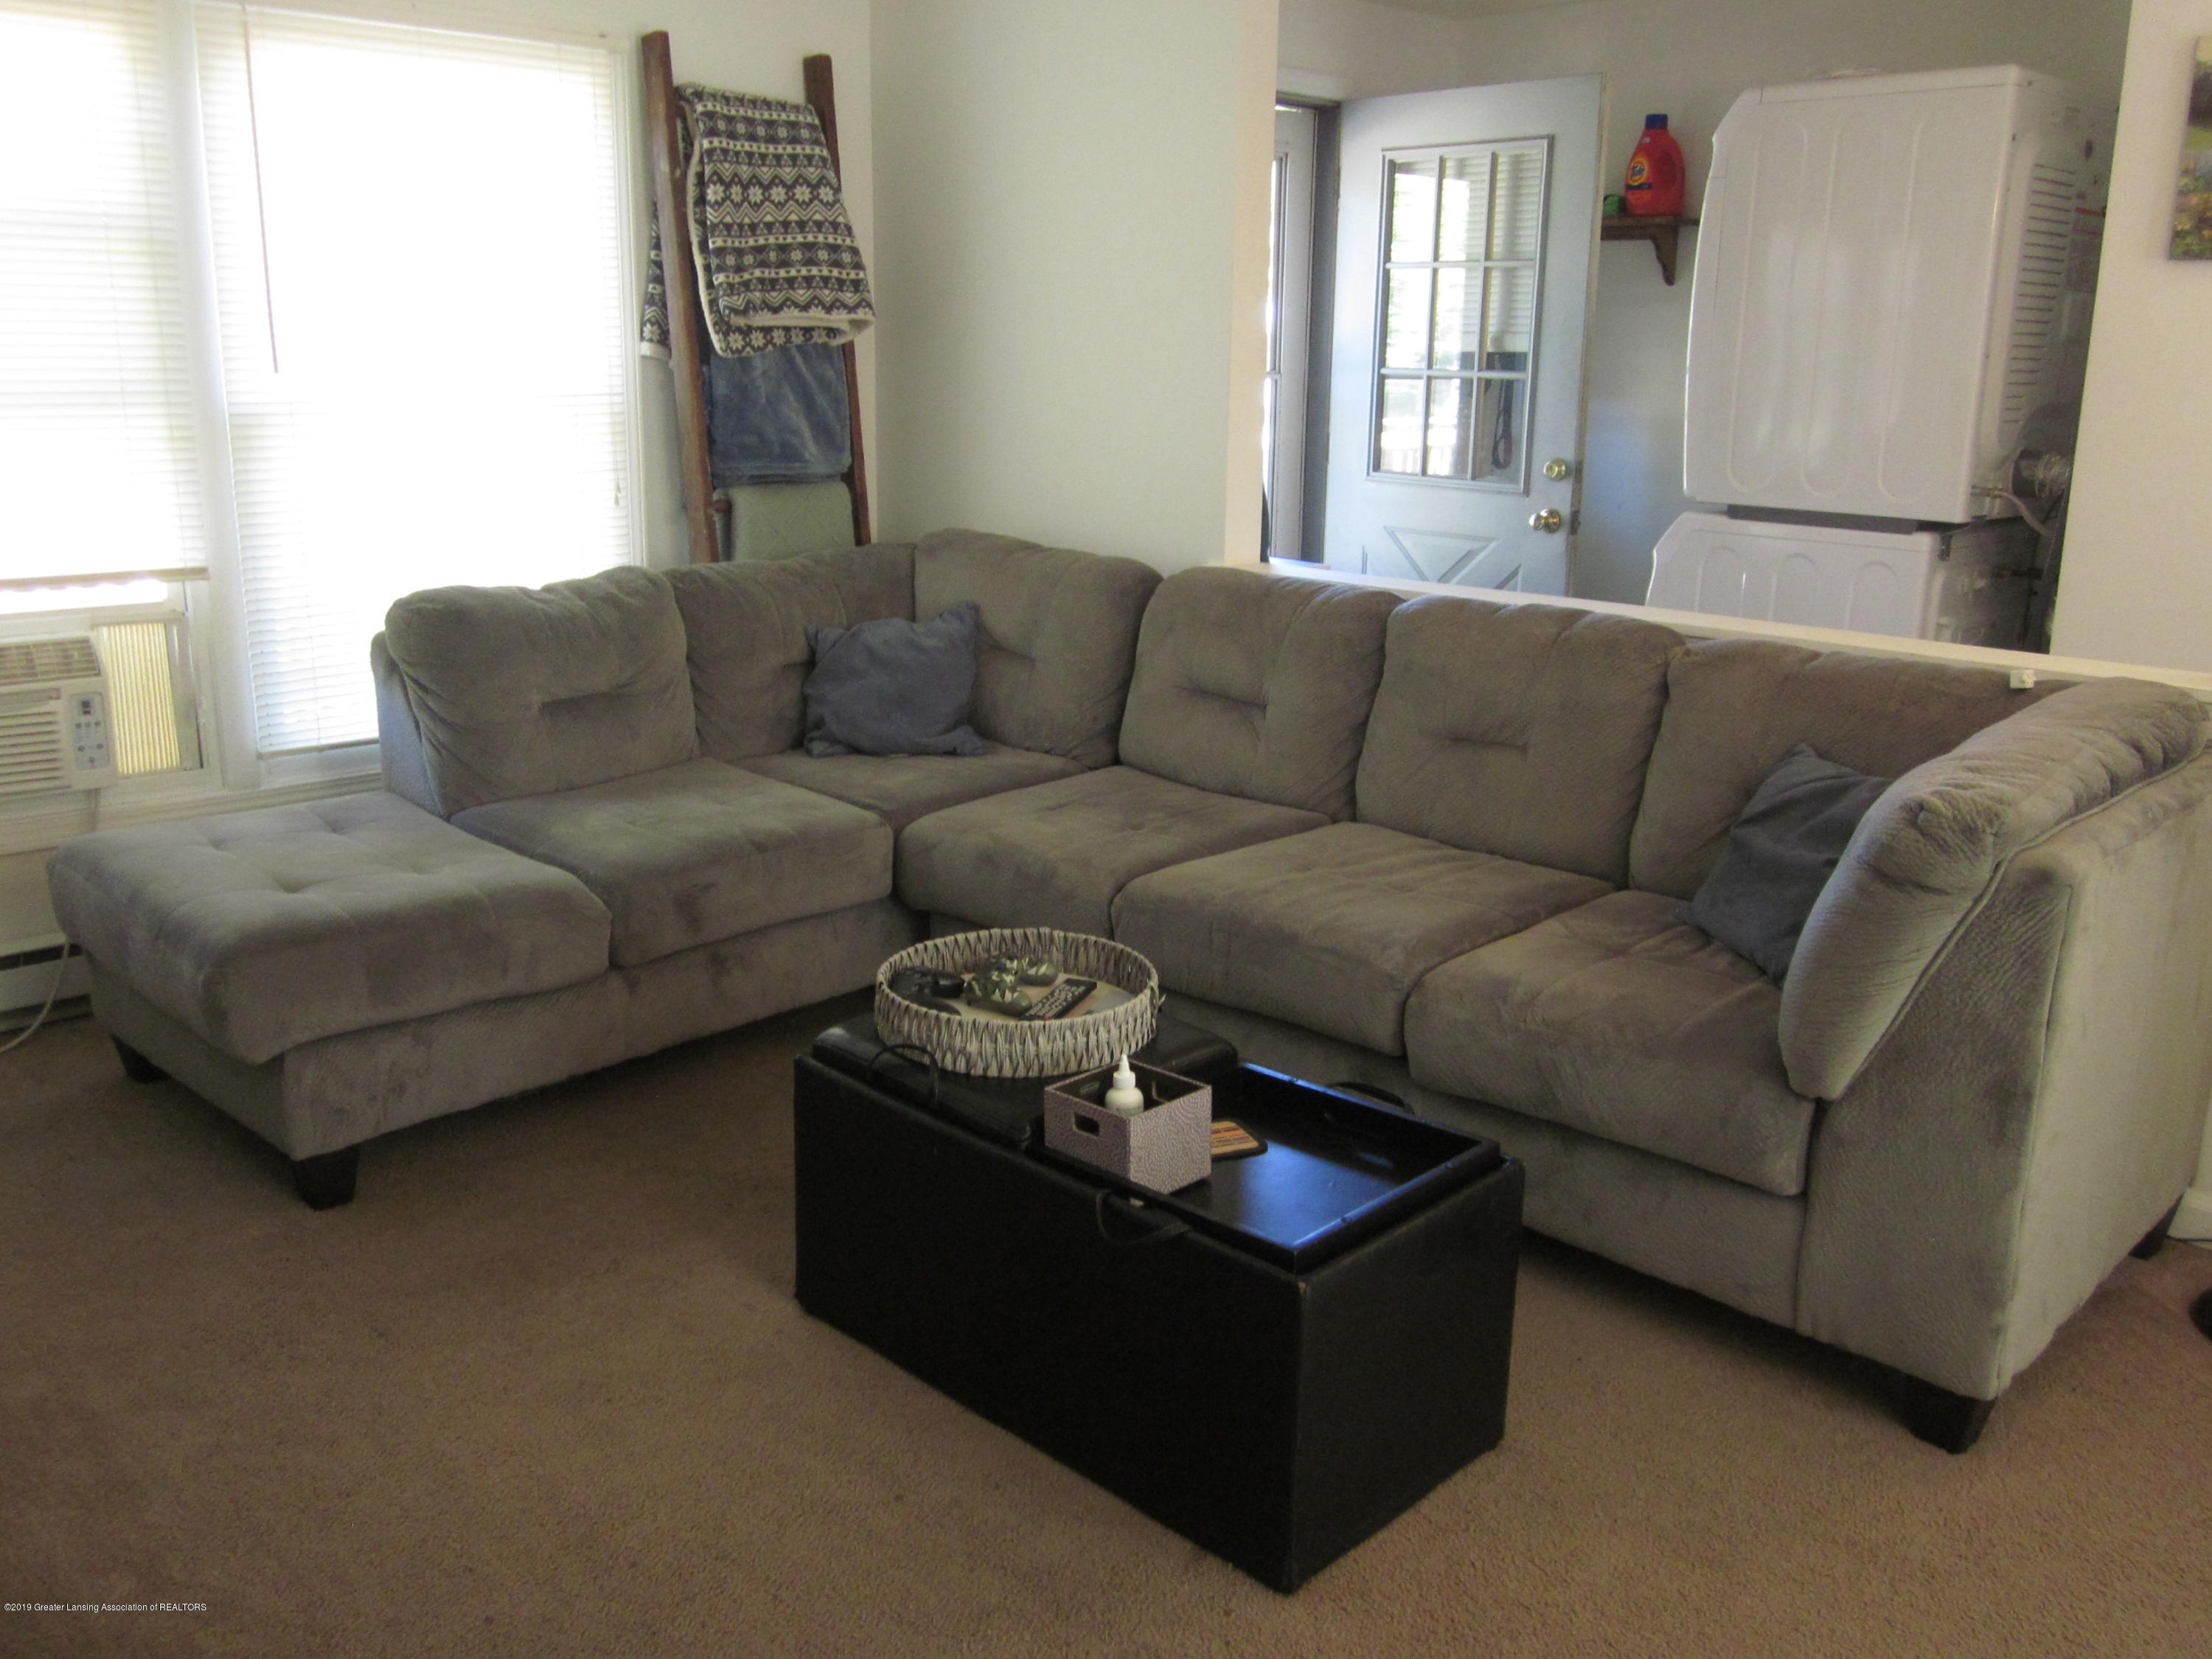 535 S Magnolia Ave - Living room - 7